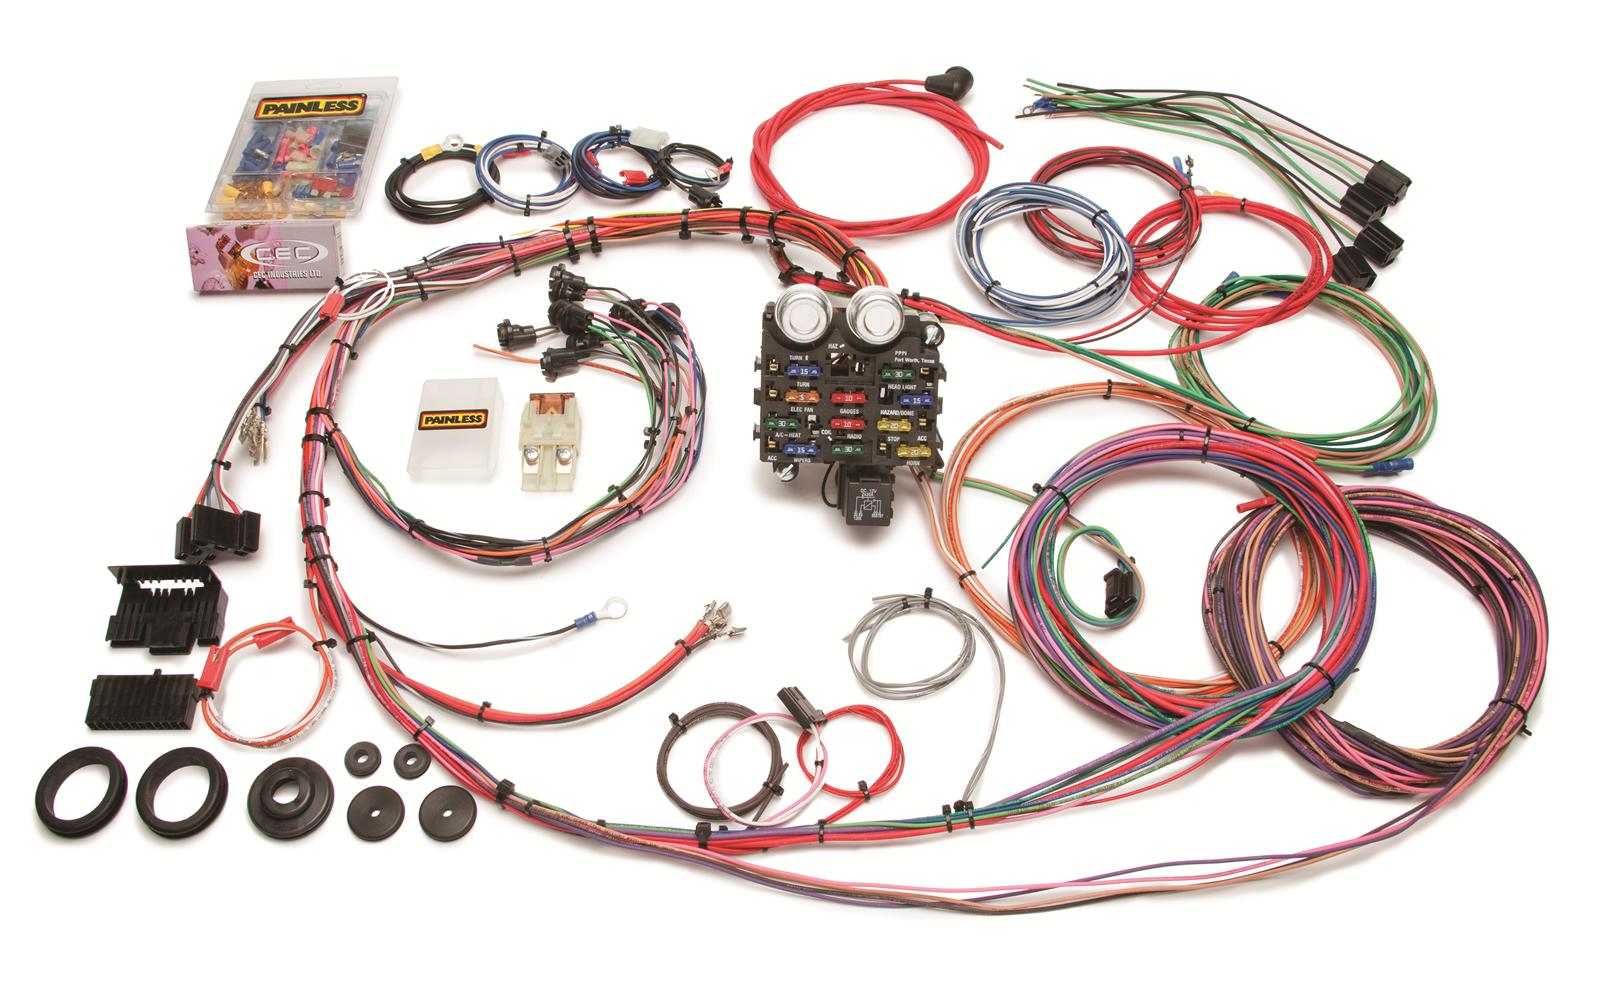 Painless Performance 19 Circuit Gmc Chevy Truck Harnesses 10112 Gm Trailer Plug Wiring Pick Up Free Shipping On Orders Over 49 At Summit Racing